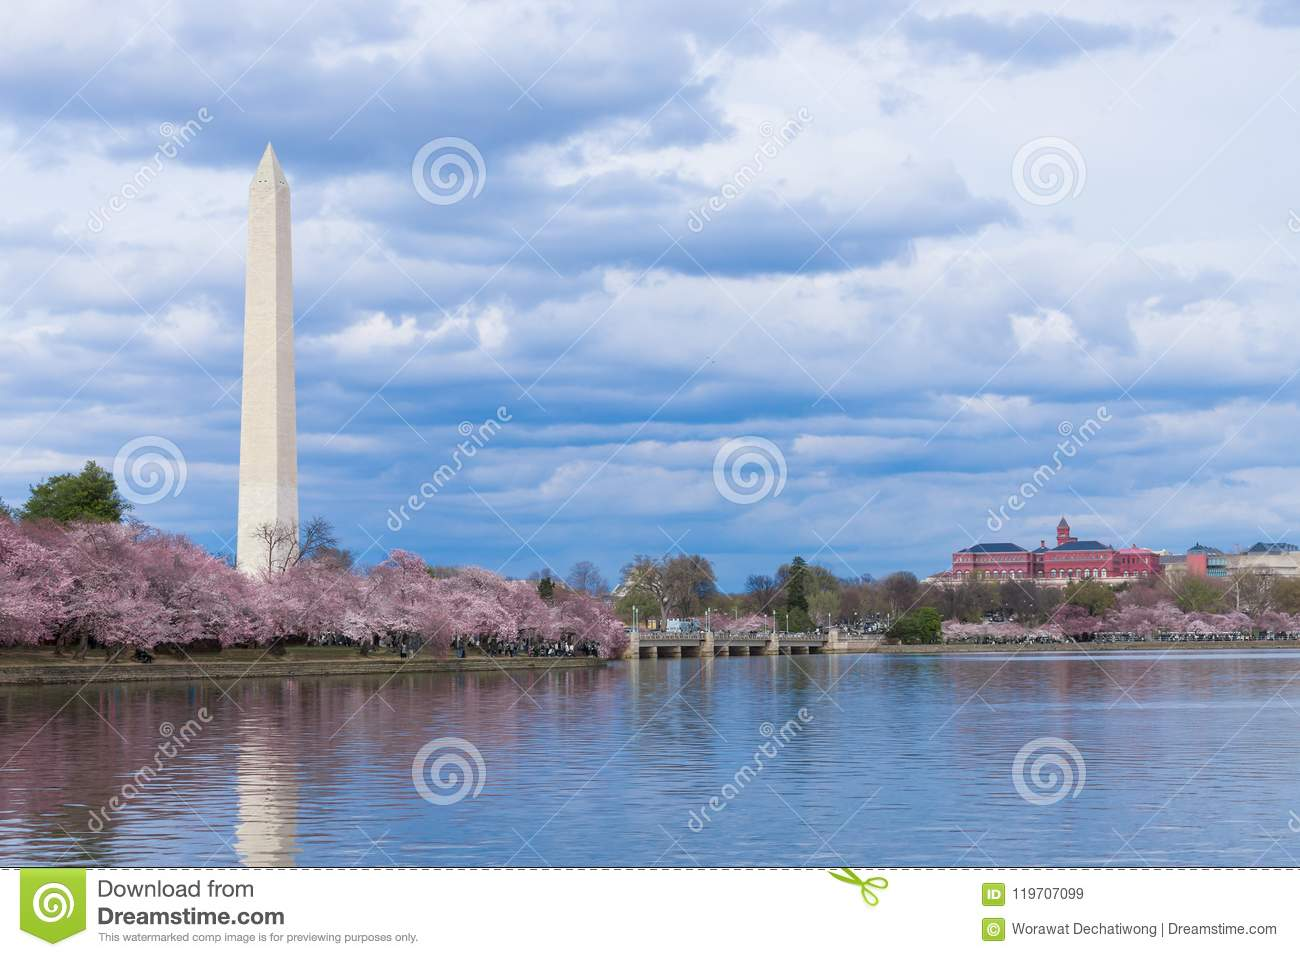 Washington Monument under Cherry Blossom Festival på den tidvattens- handfatet, Washington DC